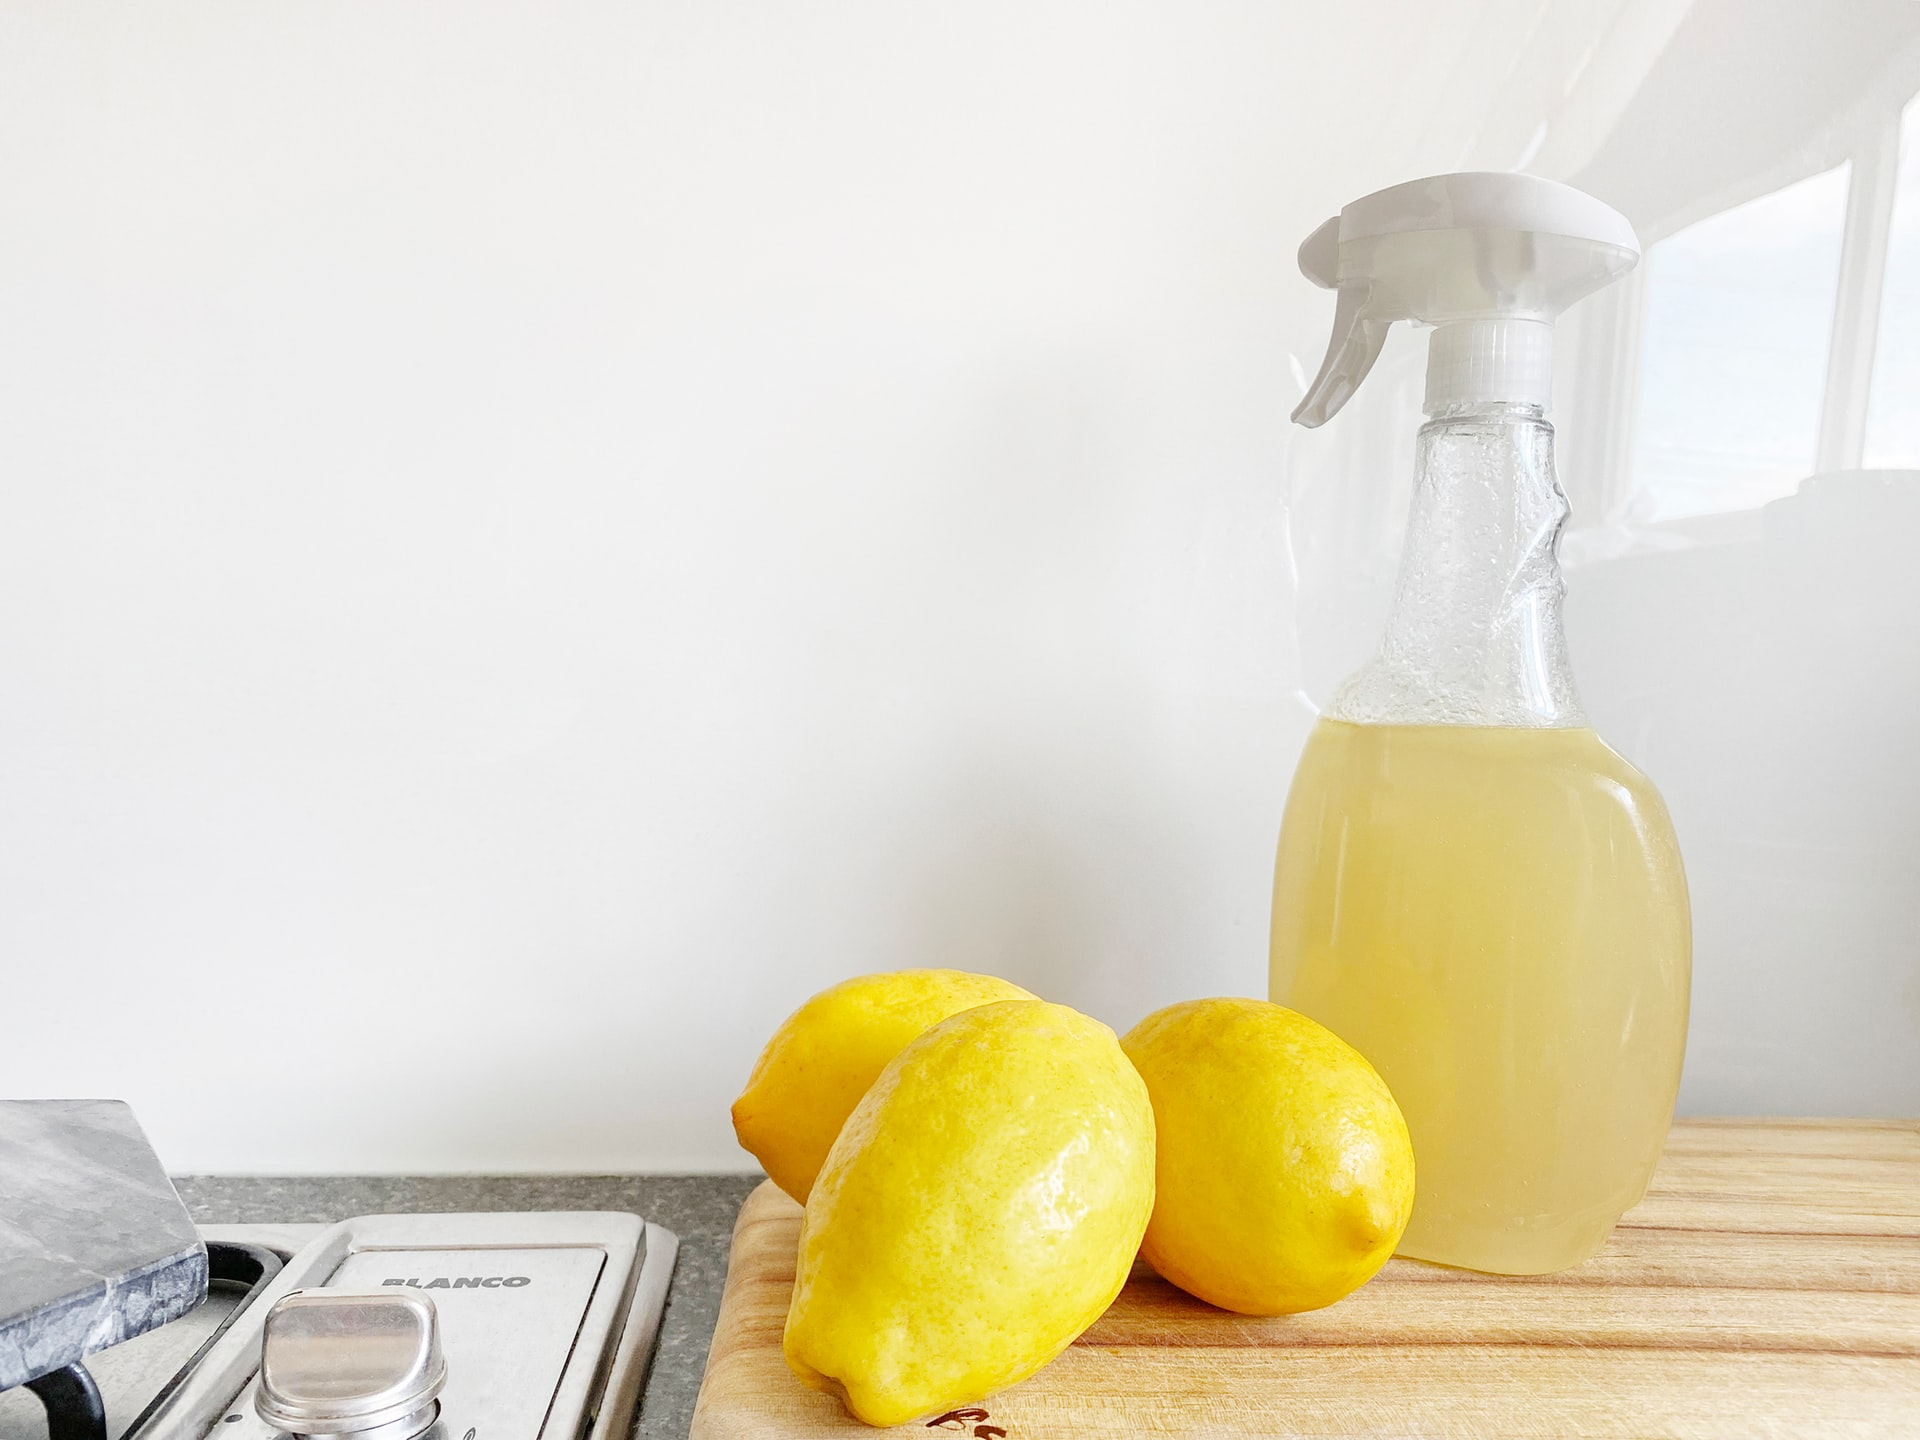 Three lemons and a spay bottle containing a mixture of vinegar and lemon, which can help get rid of ants and termites